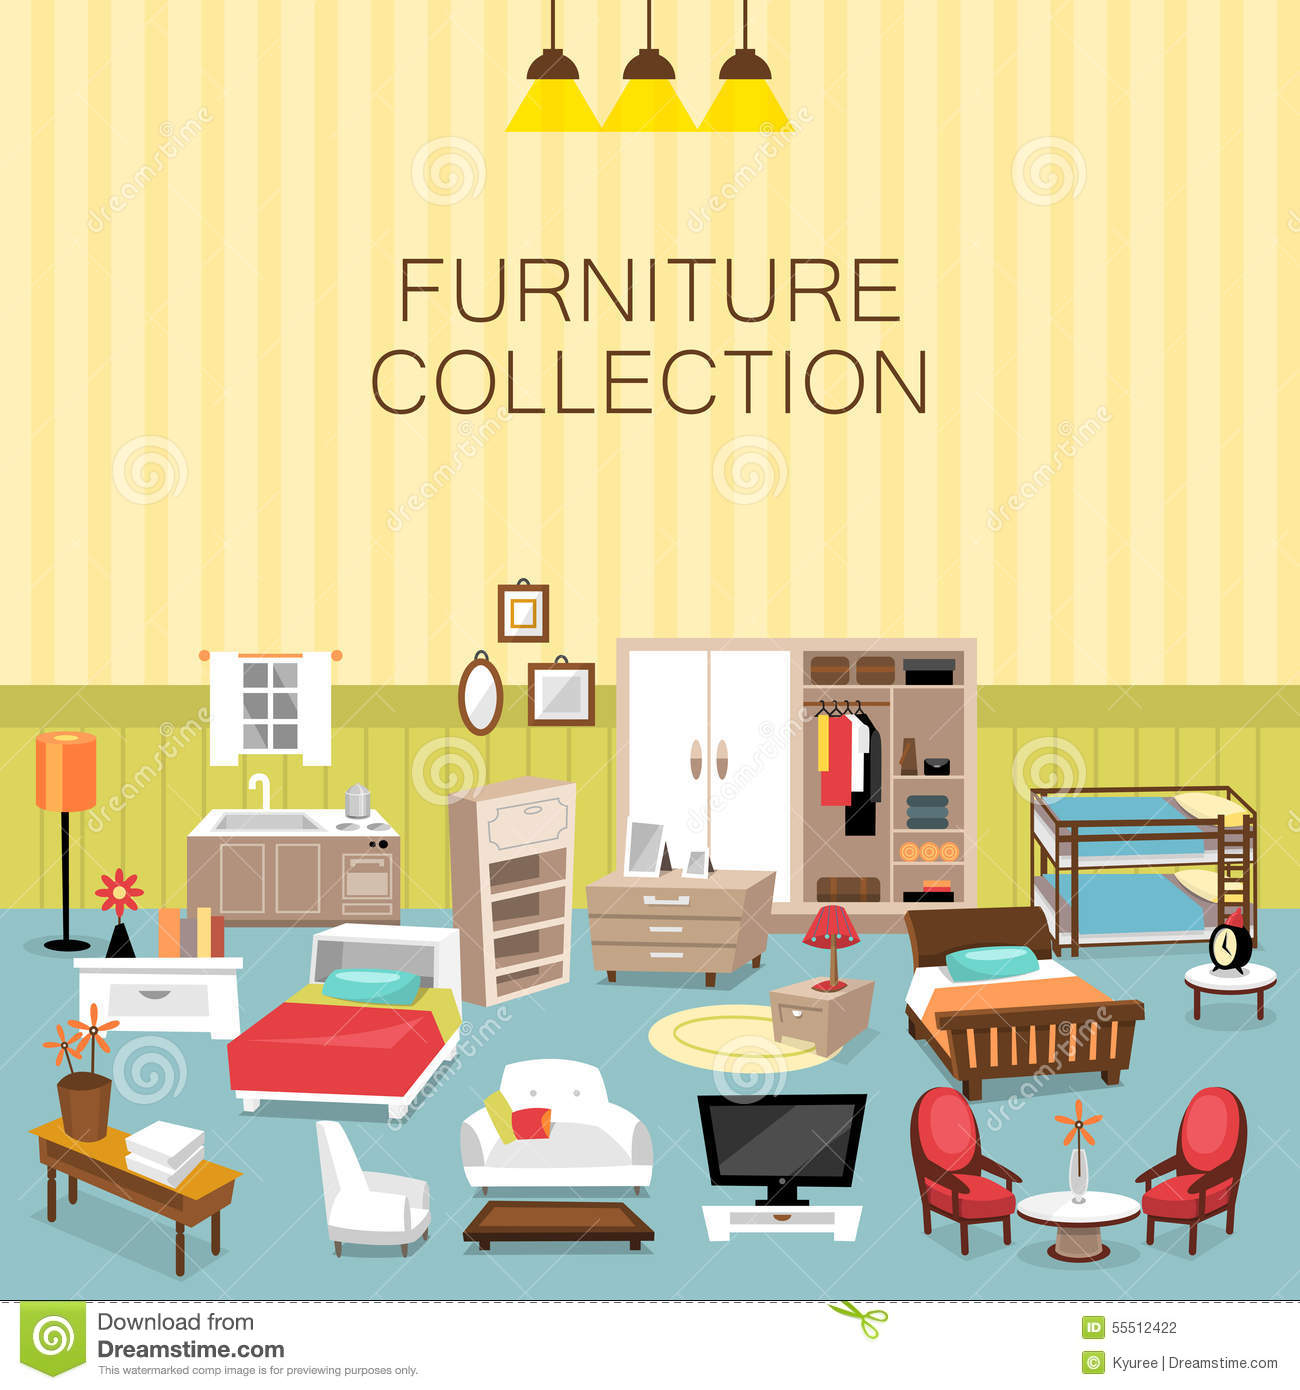 Furniture Ideas For Living Room Stock Vector: Design Element And Furniture Collection For Home Interior